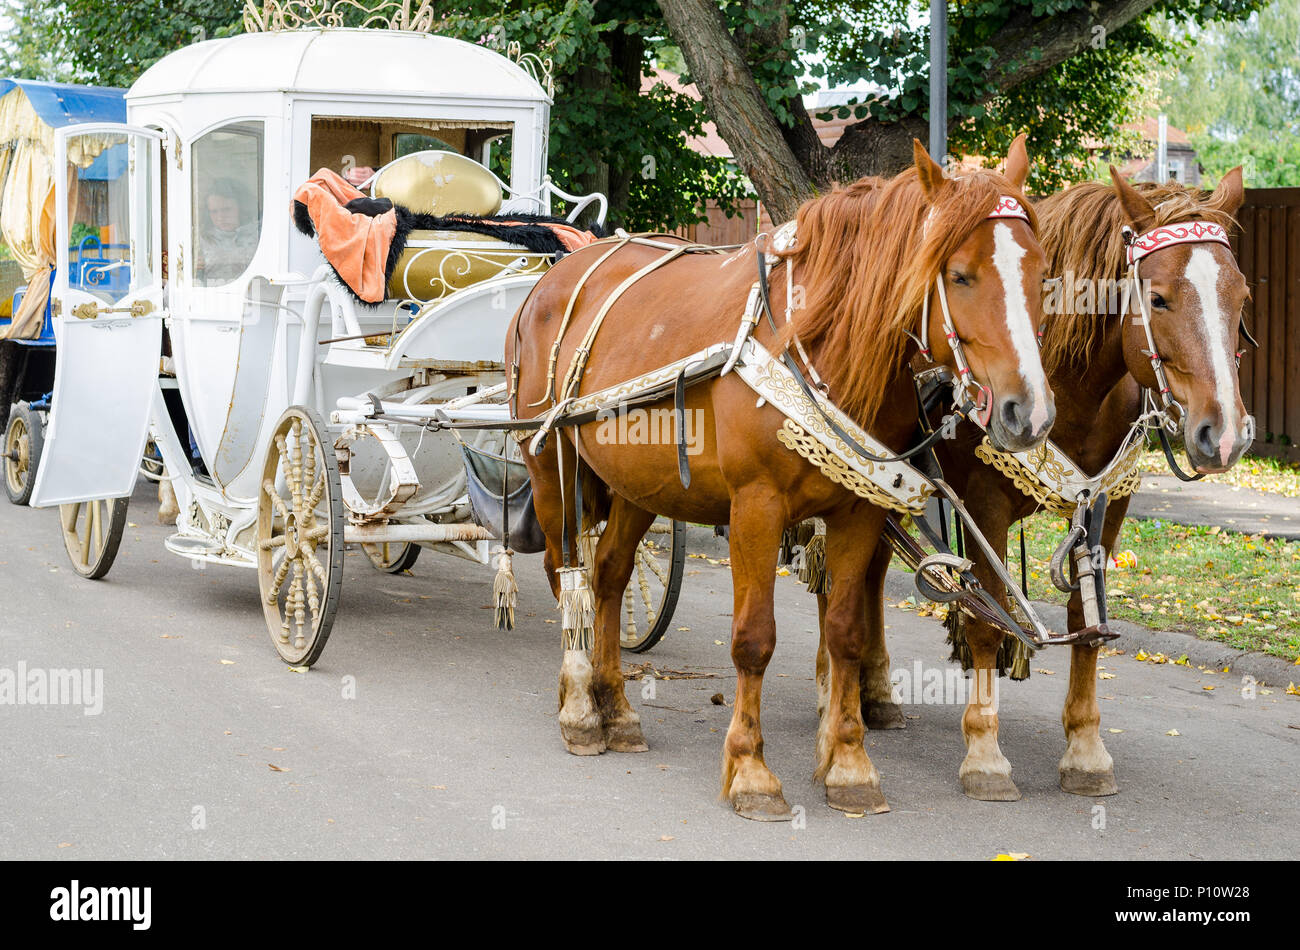 Horse with a carriage for walking around the city of Suzdal. - Stock Image